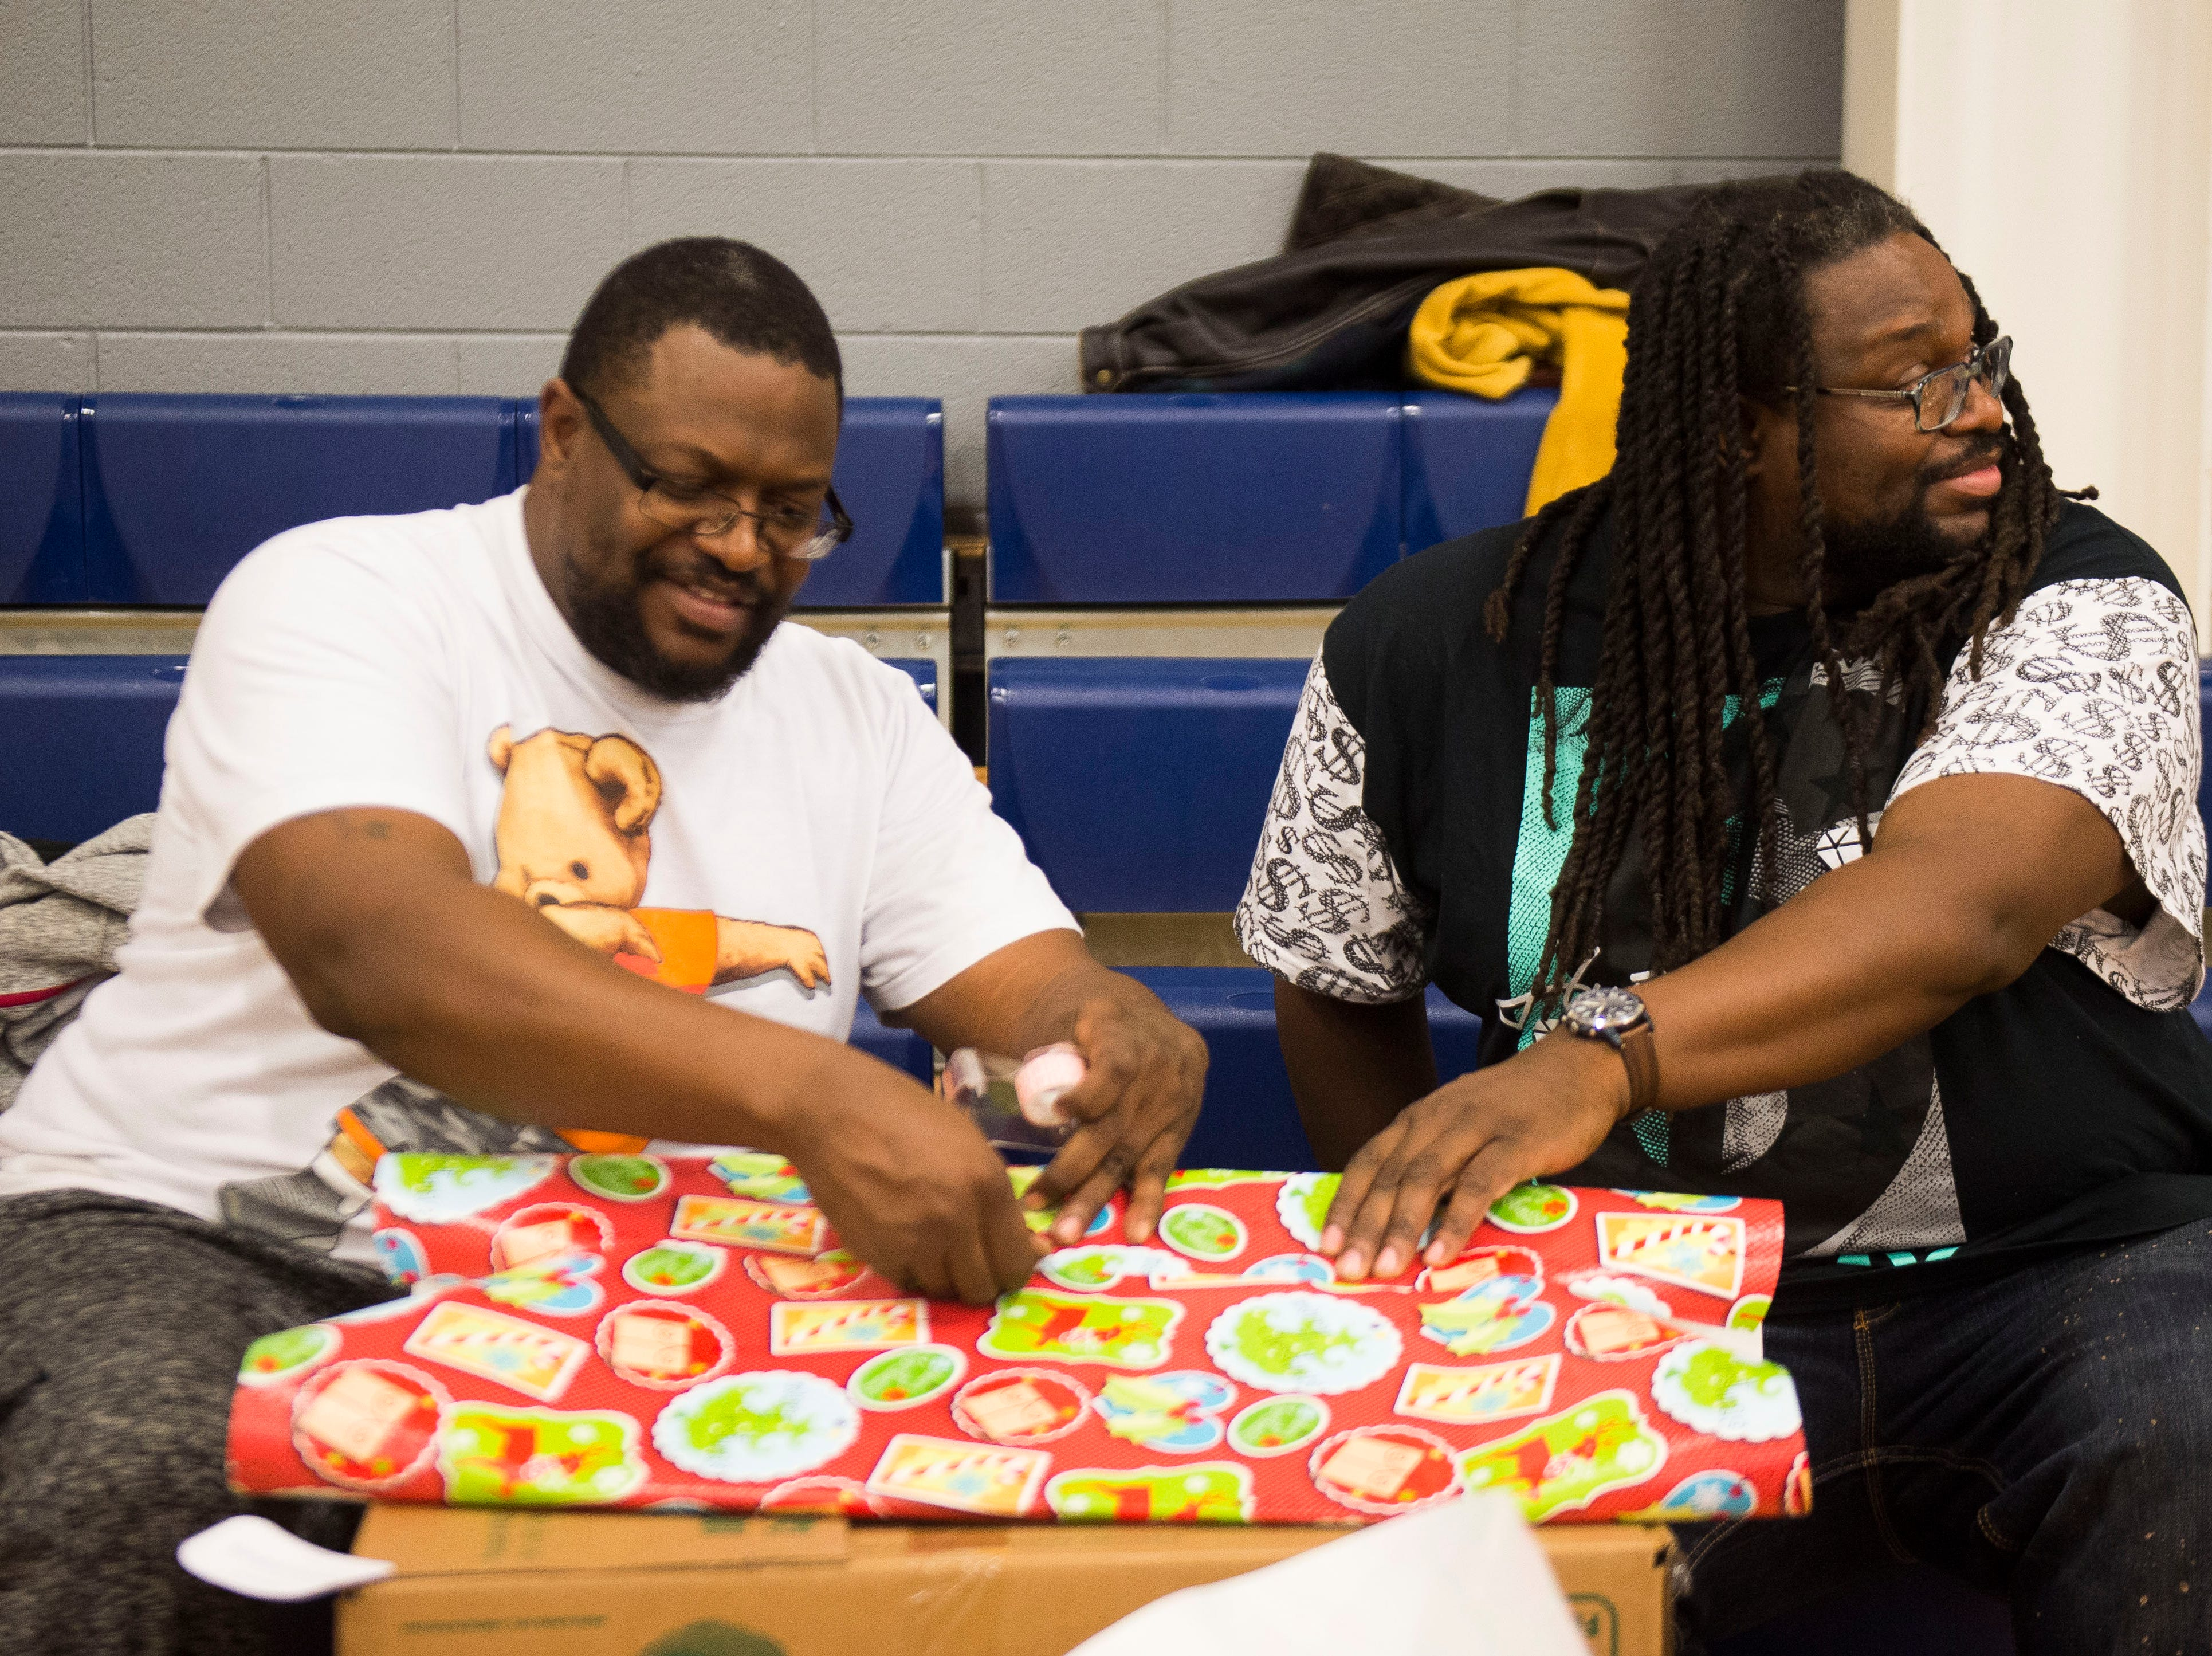 Maurice and Dion Chandler wrap presents at the Boys and Girls Clubs Regal Teen Center in Knoxville Saturday, Dec. 8, 2018. Parents, grandparents or guardians of over 1,500 underserved children were able to pick out a limited number of free gifts for their child.